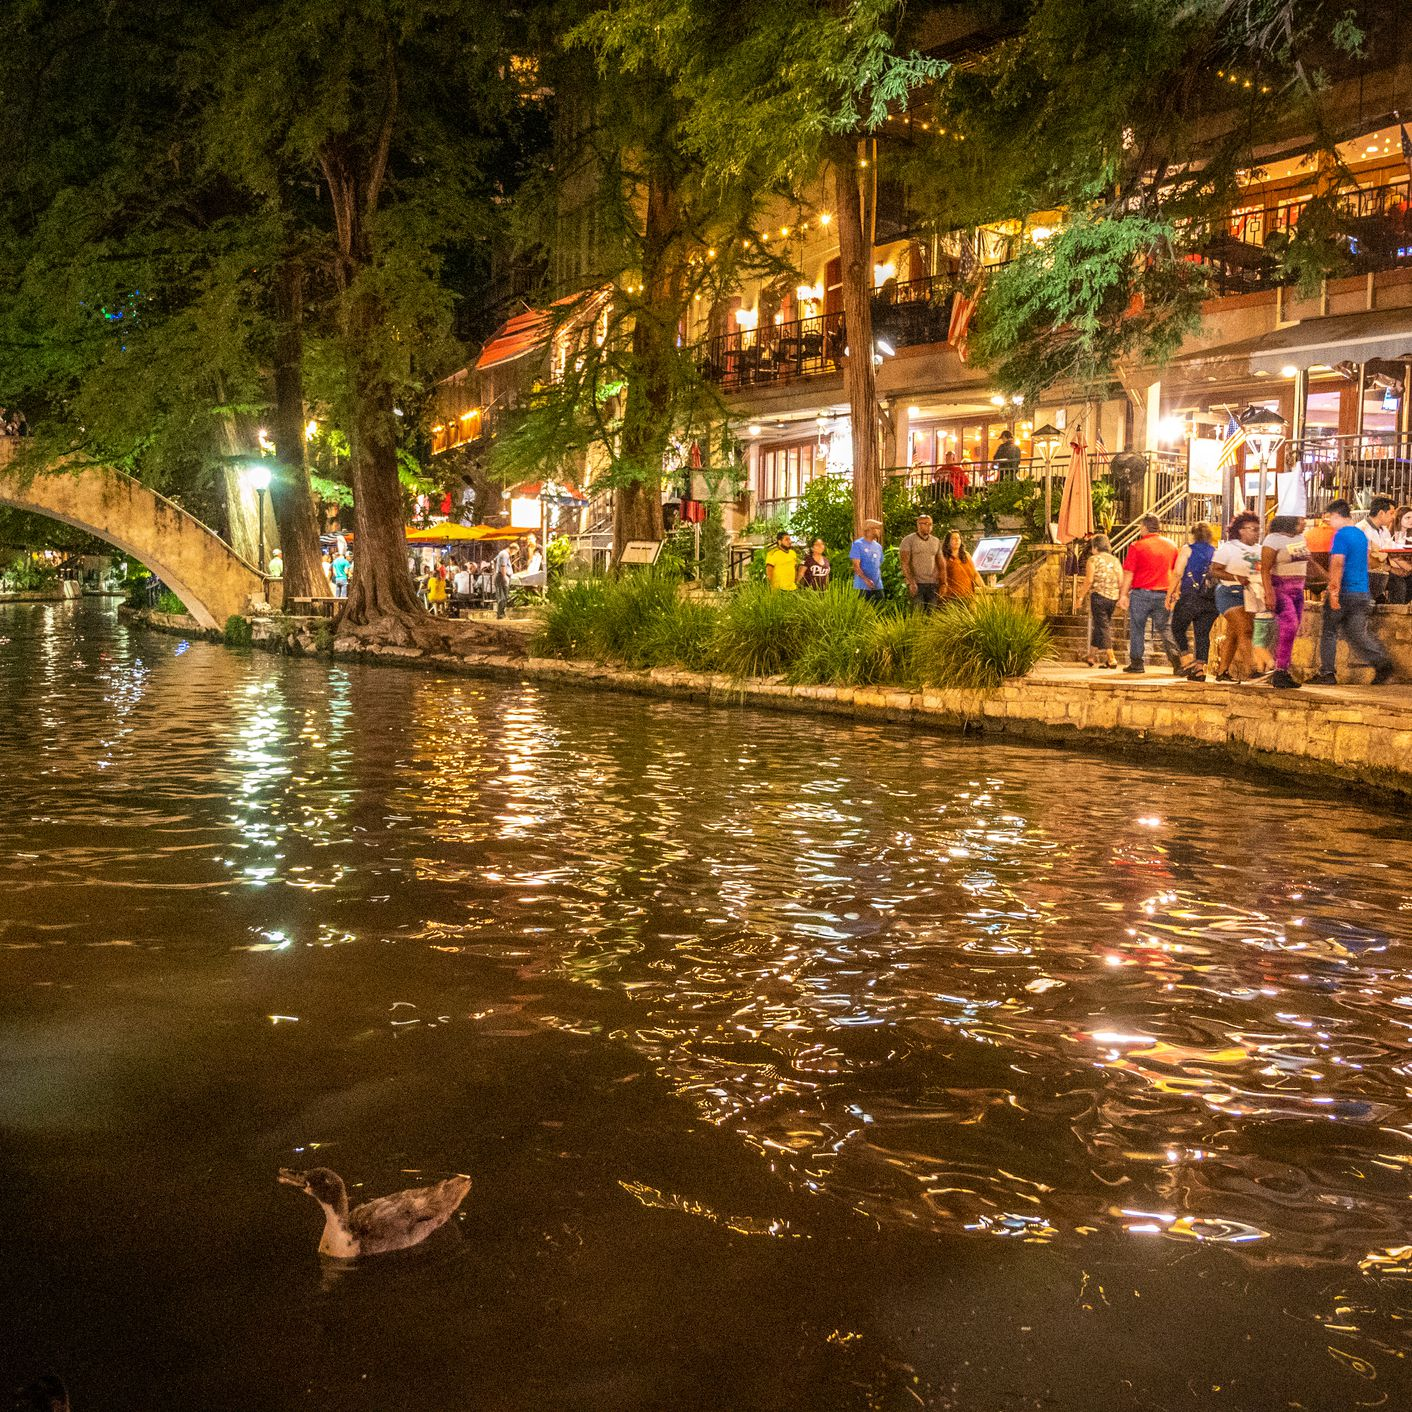 The Complete Guide to the San Antonio River Walk